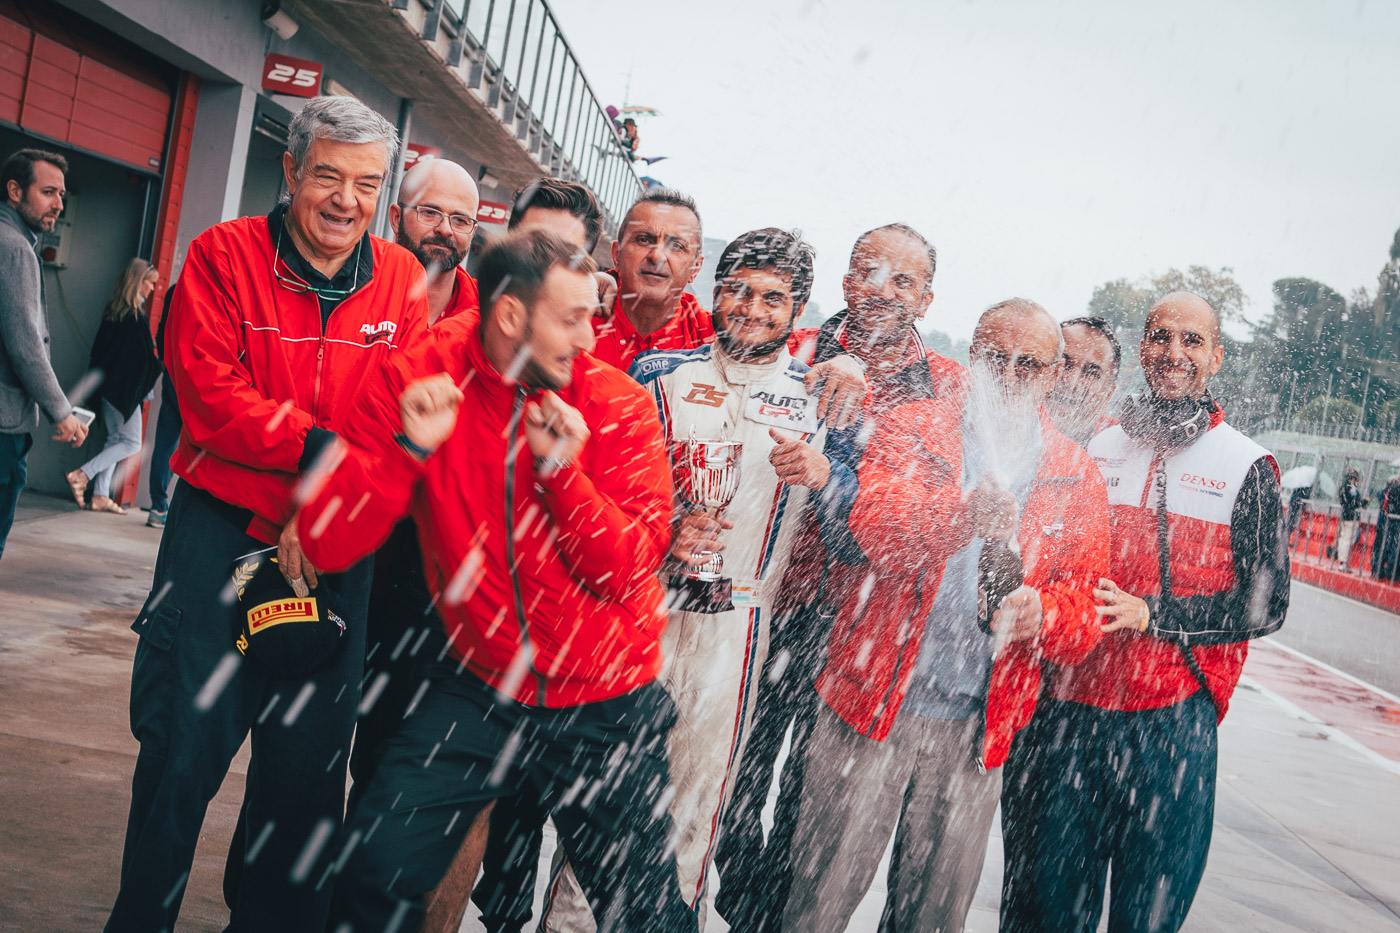 Mahaveer Raghunathan - double-winner of the weekend and winner of the FORMULA class Championship 2017.